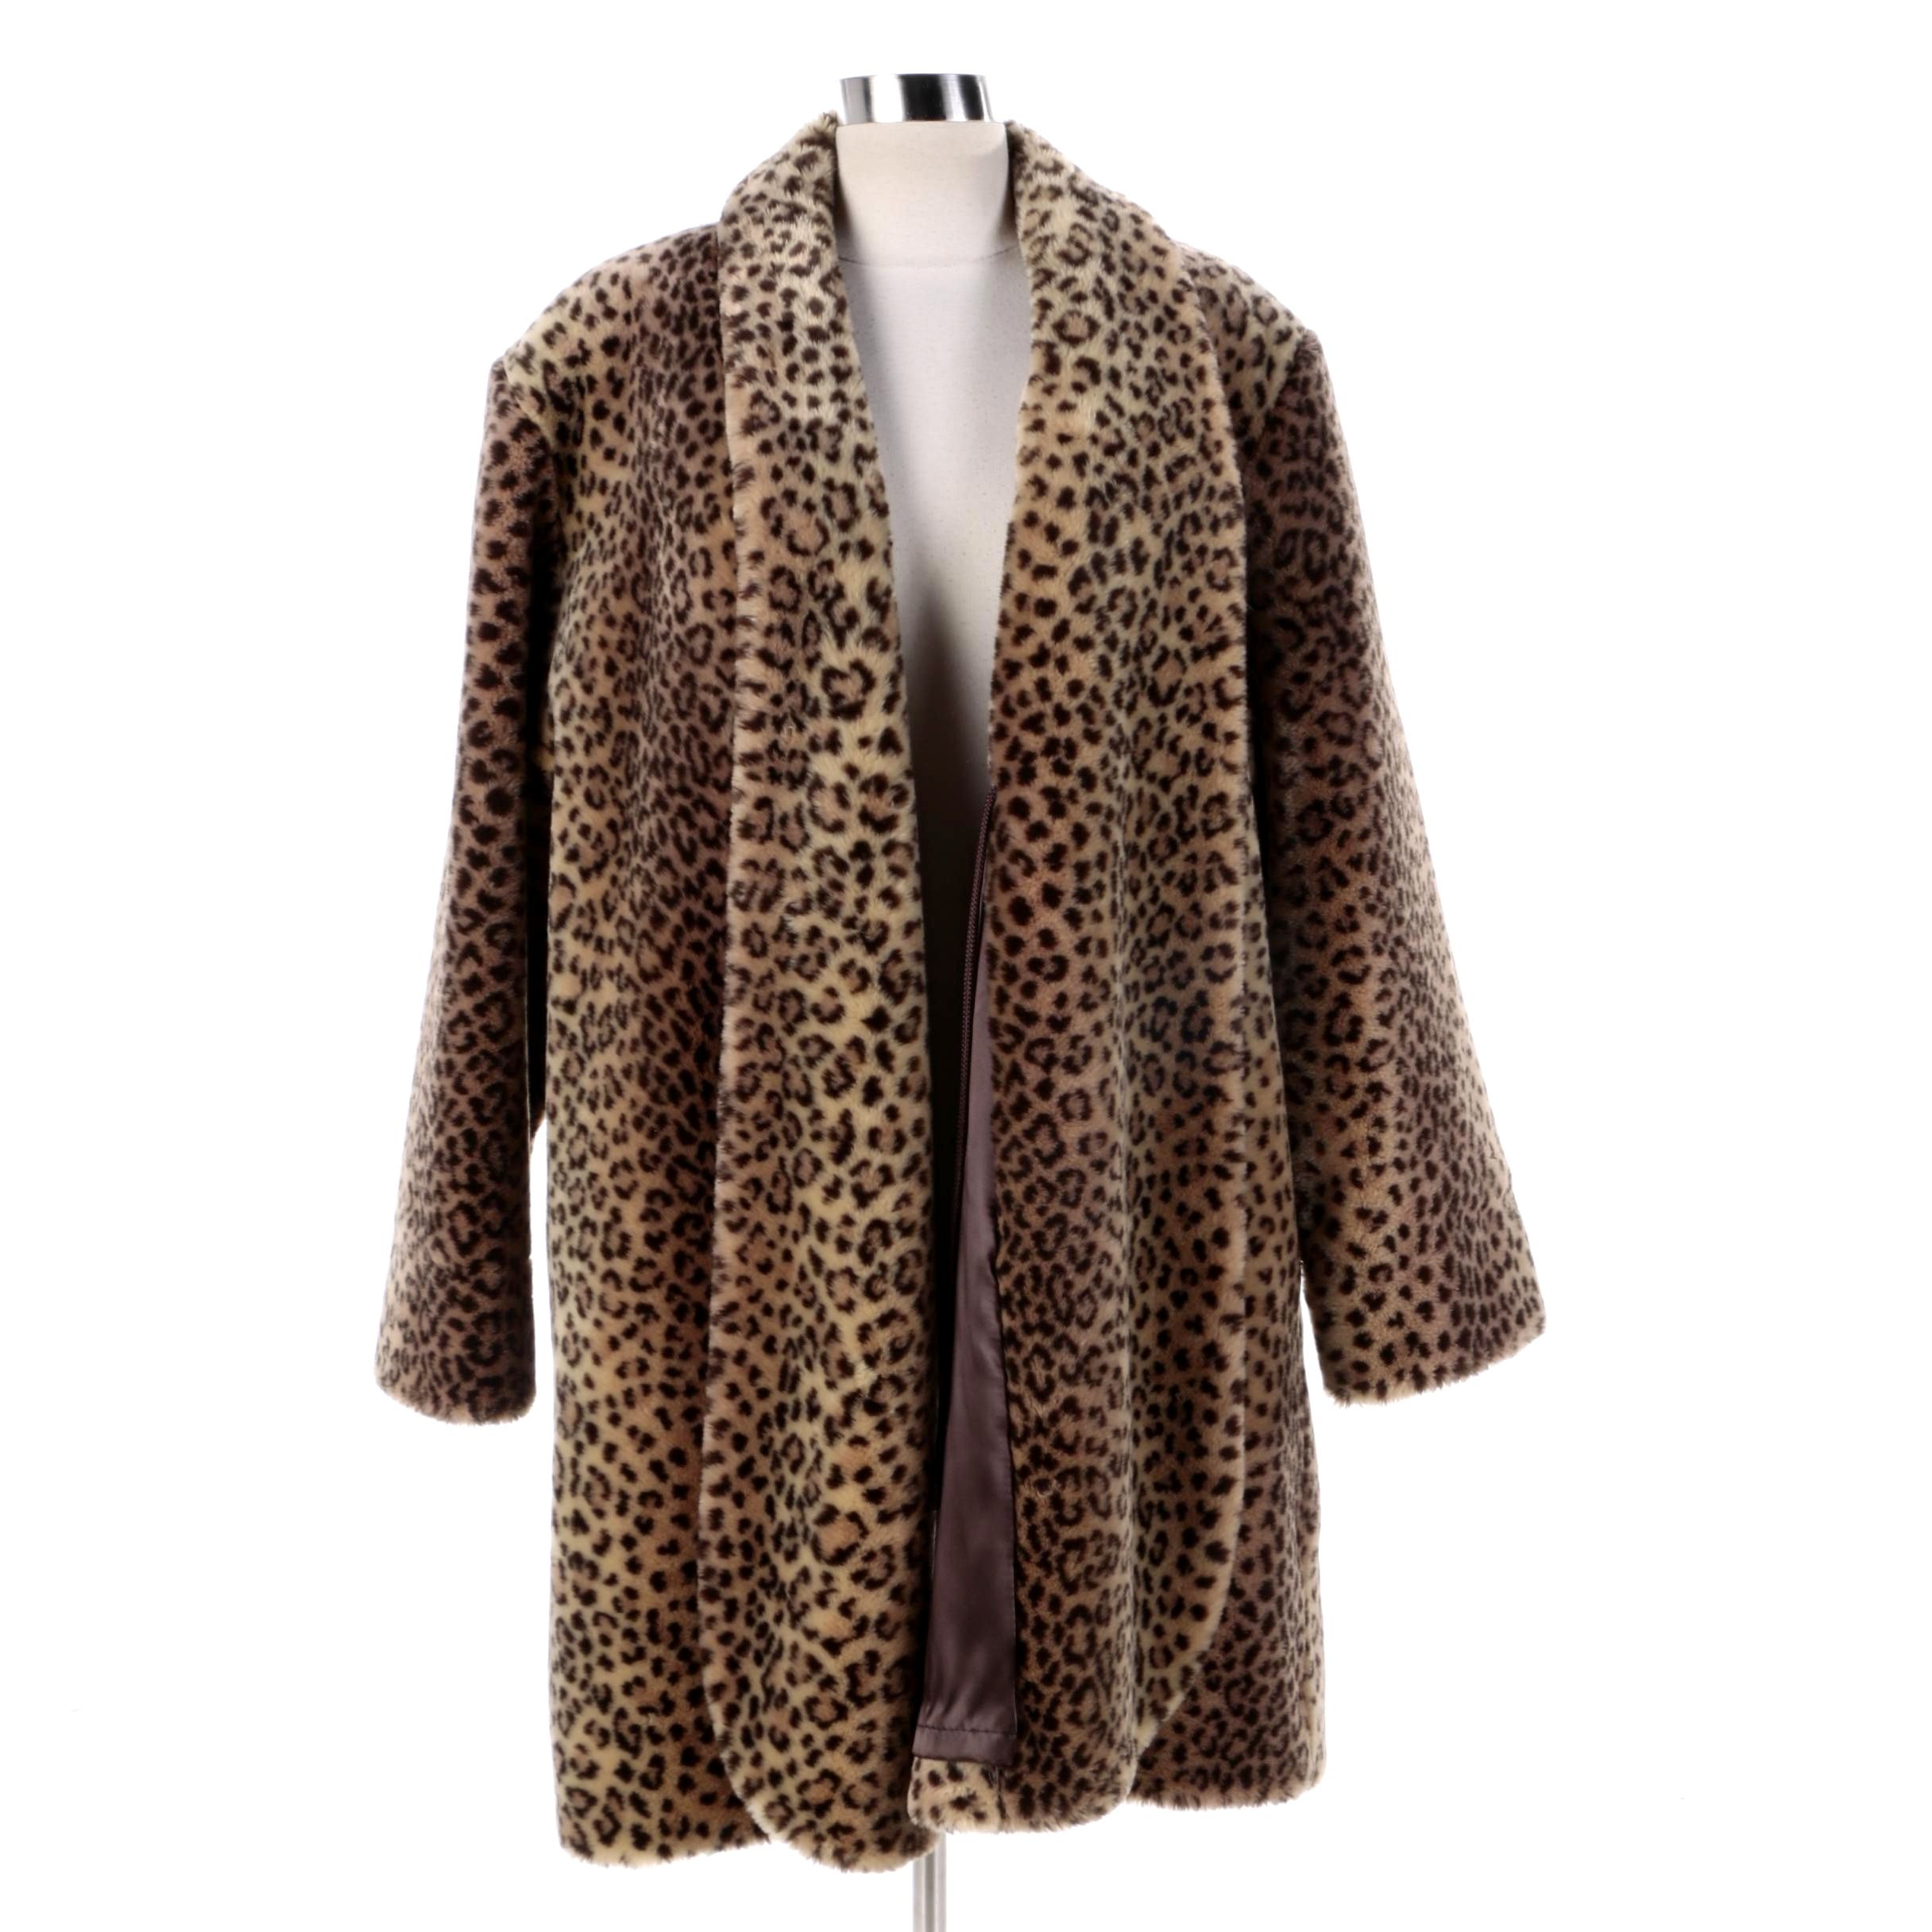 Women's J. Percy for Marvin Richards Leopard Print Faux Fur Coat